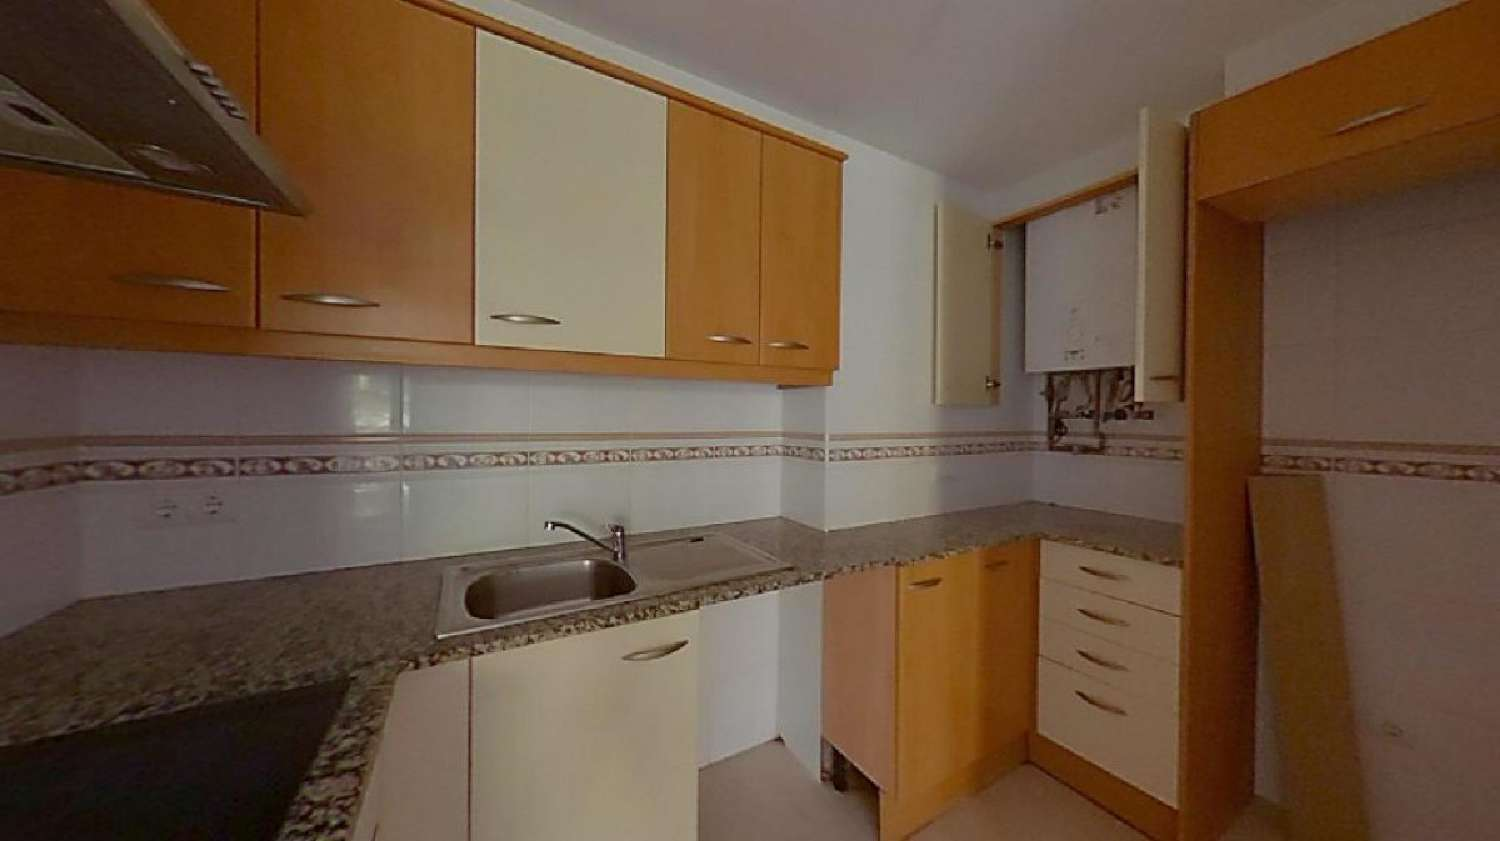 palafrugell girona appartement foto 4060154